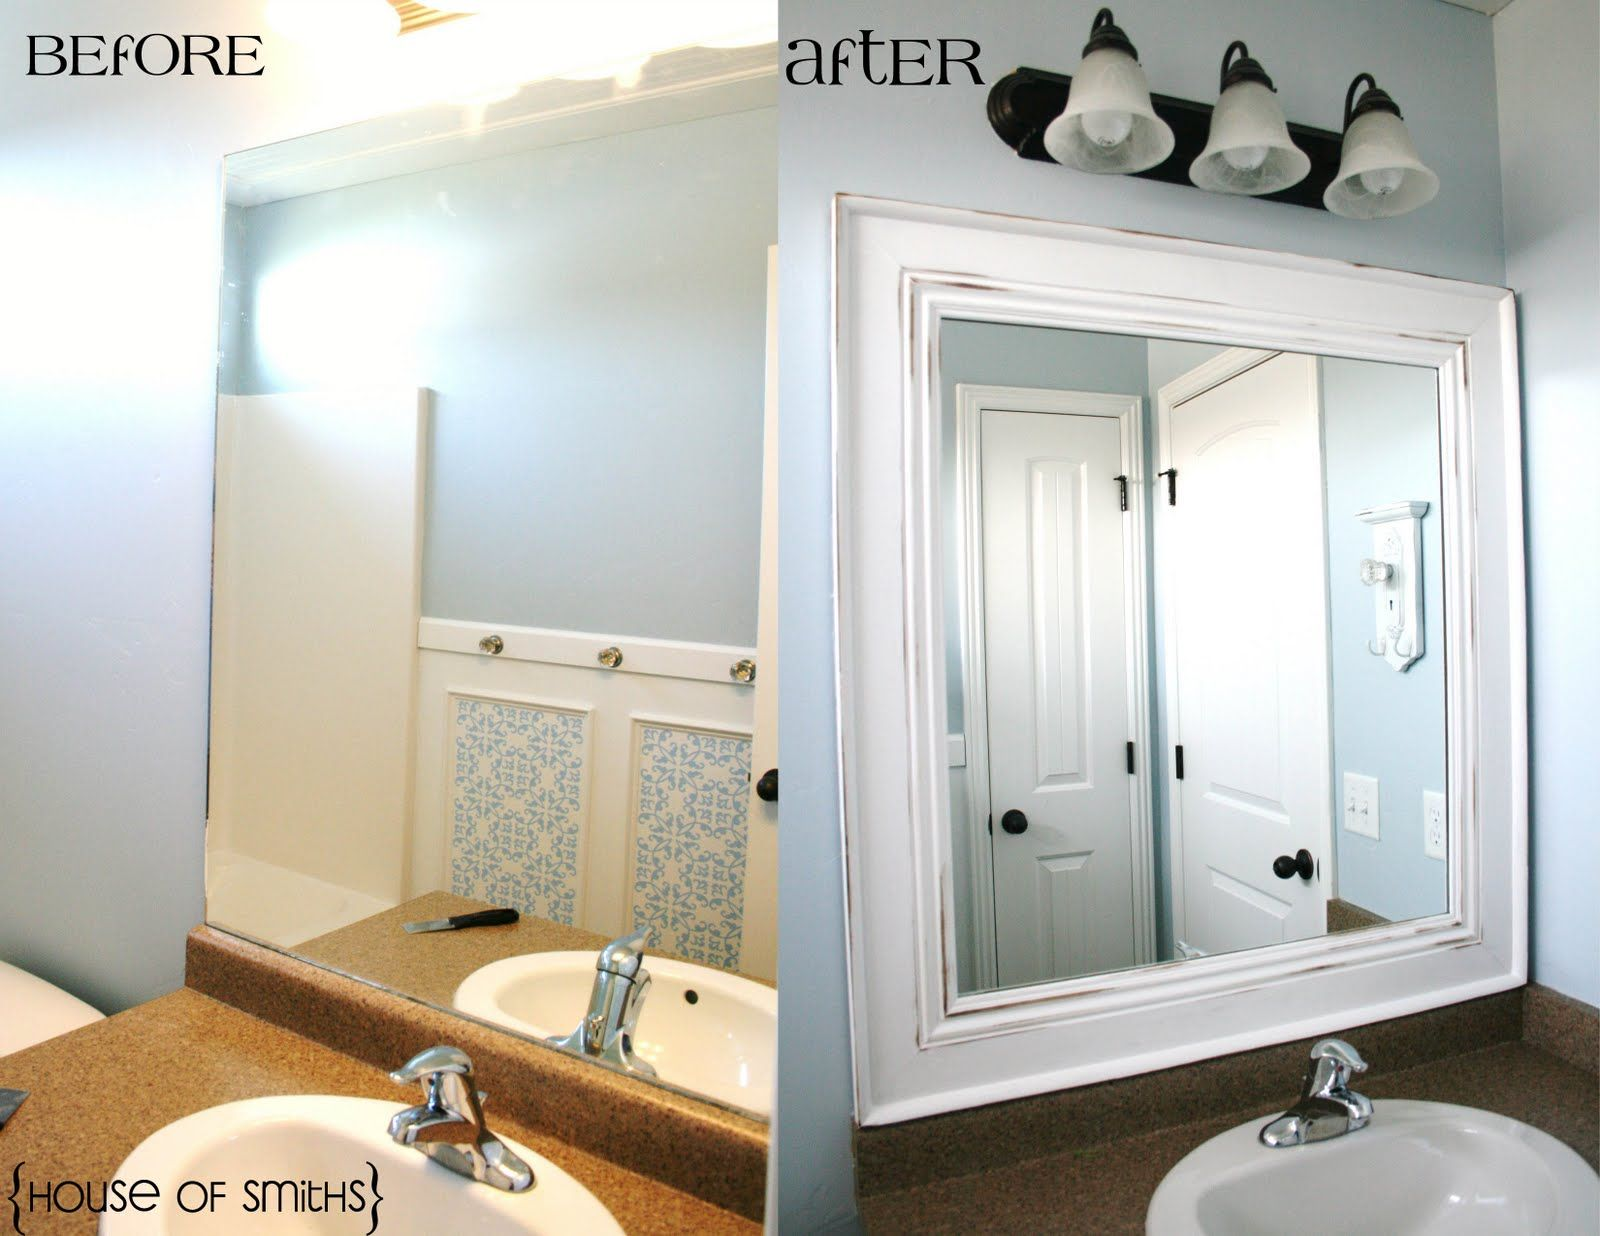 Another Amazing Bathroom Mirror Transformation I Like Having Large Mirrors In The Great Update To Existing